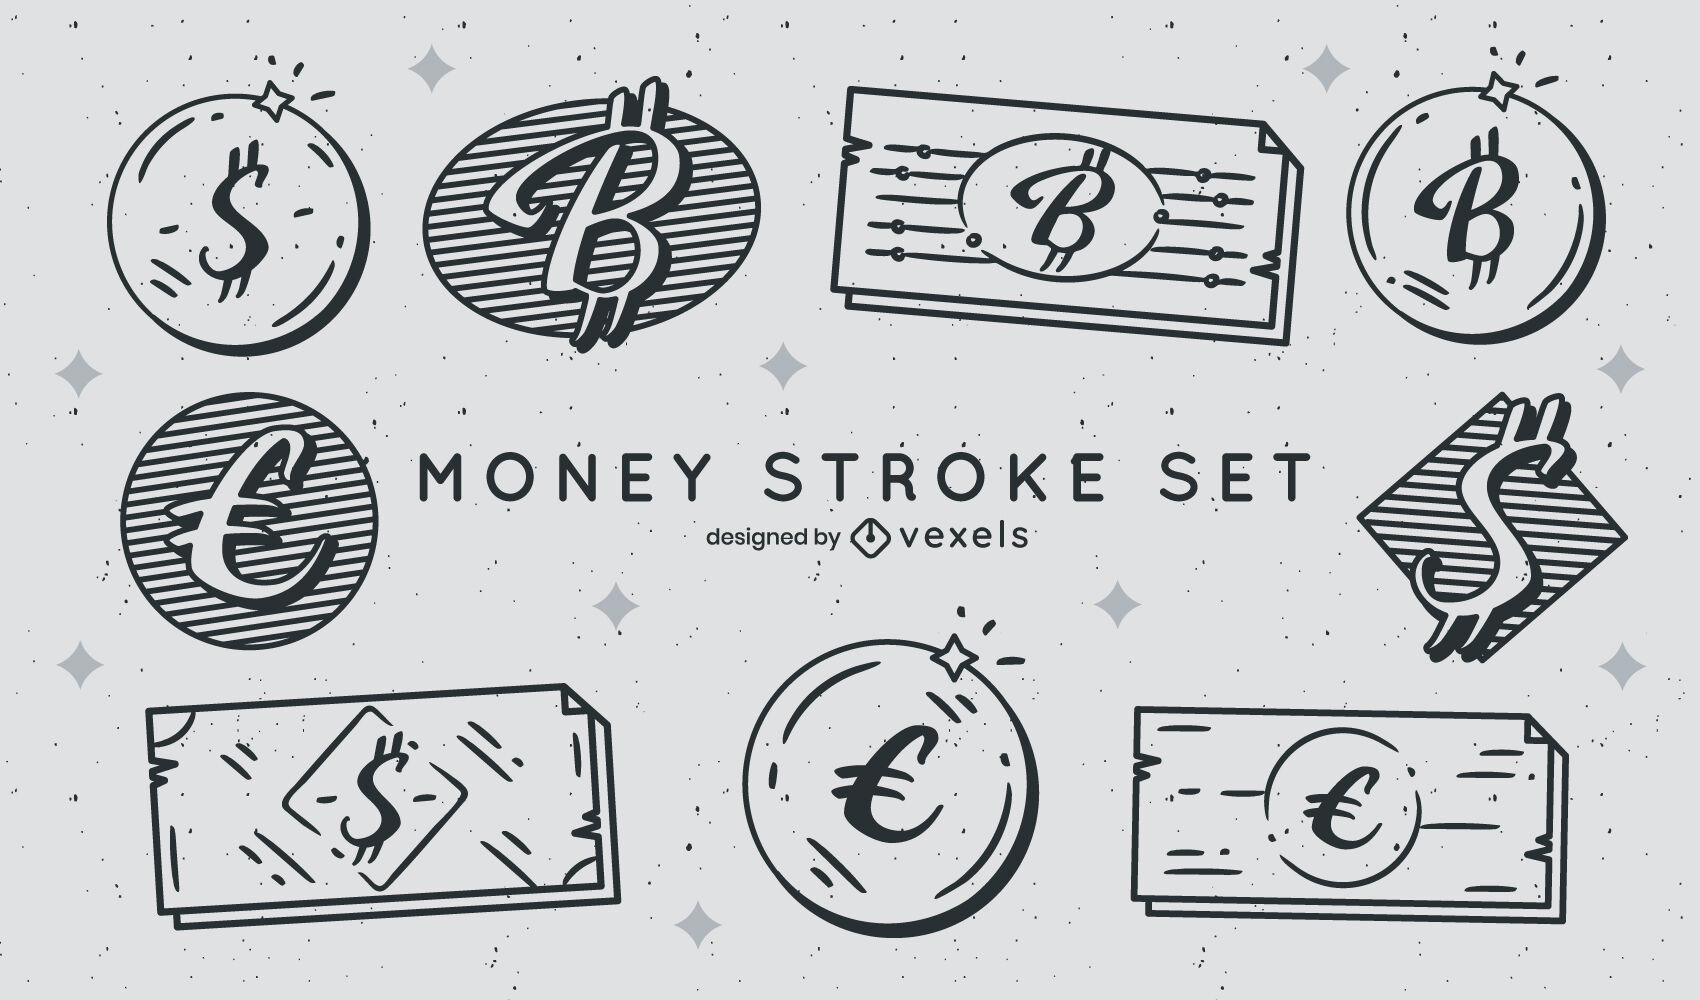 Coins and bills currency stroke set